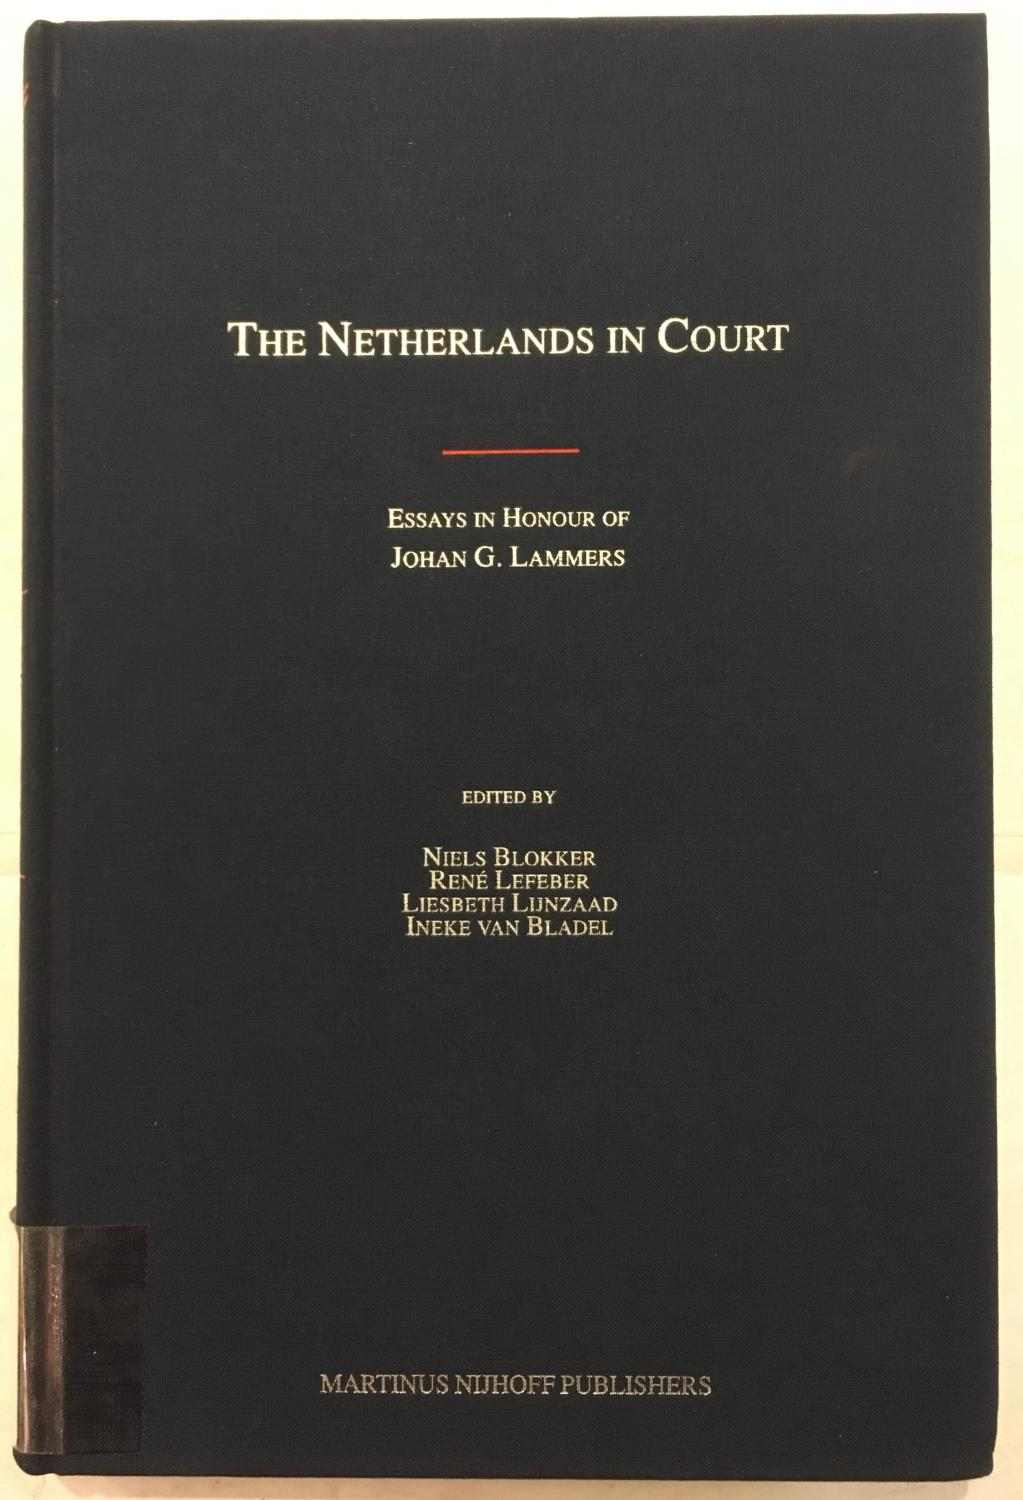 The Netherlands in Court: Essays in Honour of Johan G. Lammers - Niels Blokker; J G Lammers (eds.)